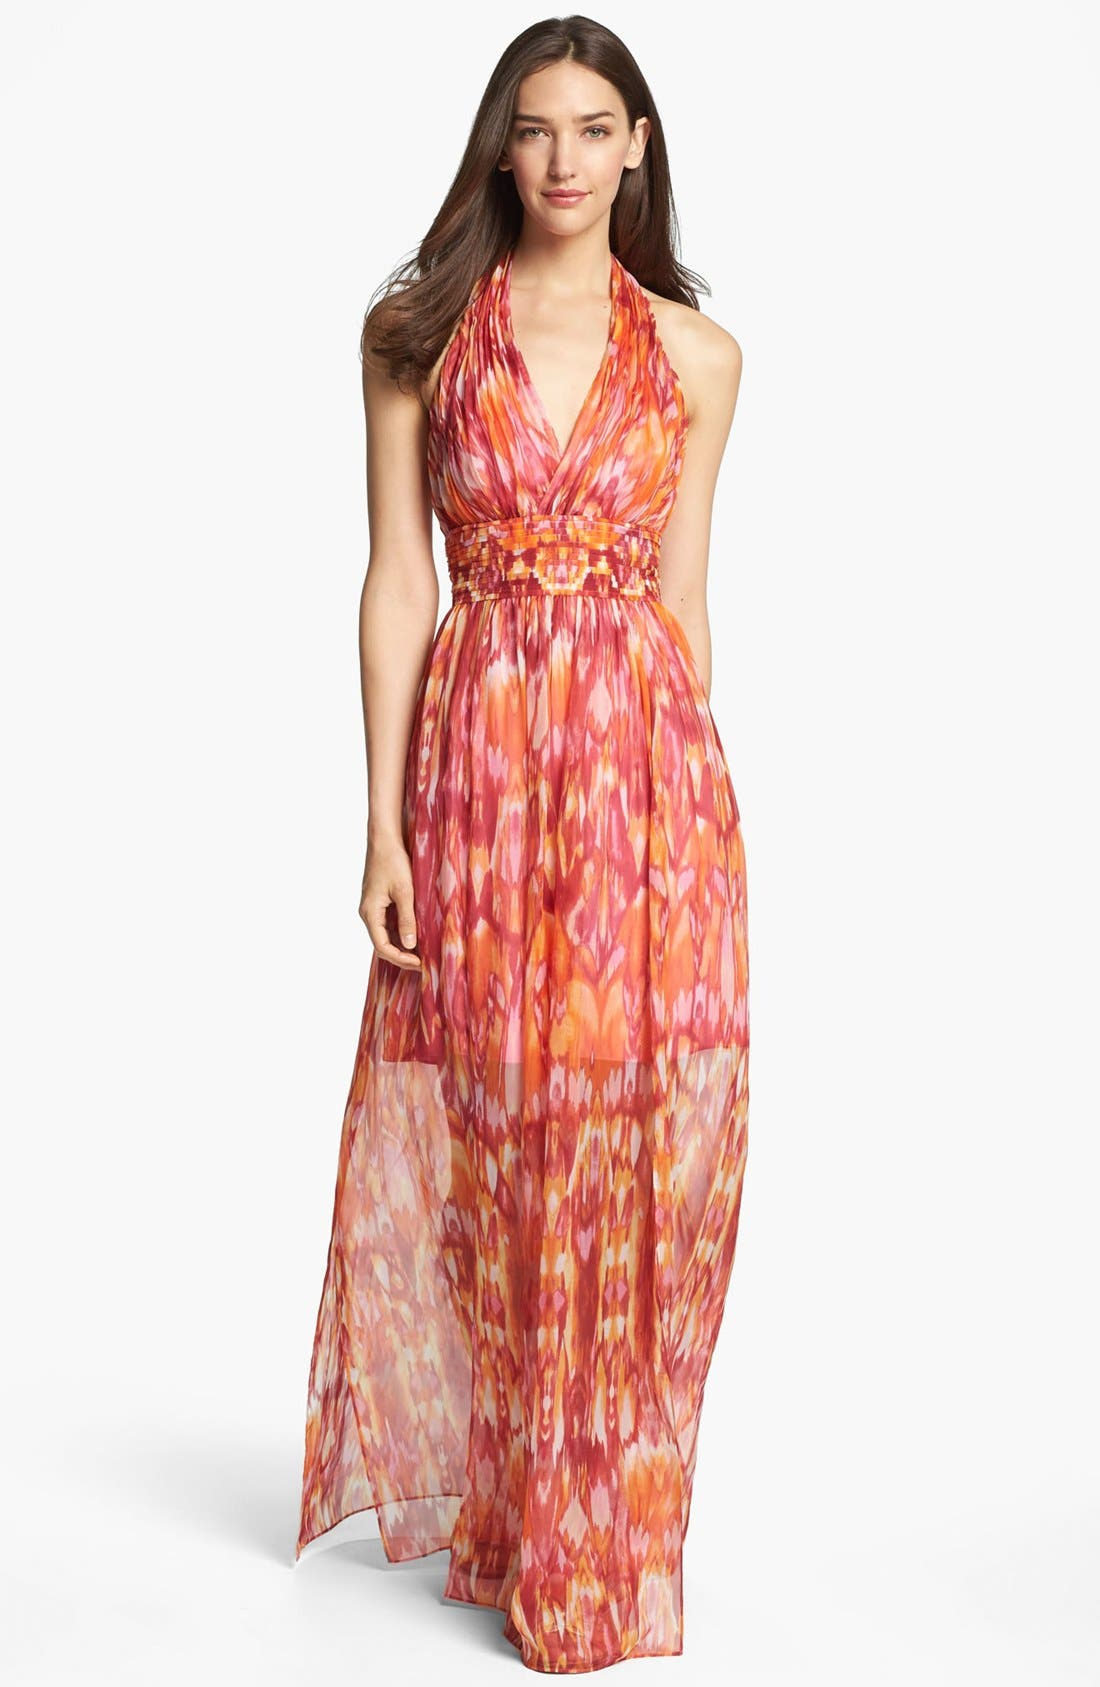 Main Image - Laundry by Shelli Segal 'Sun Shadow' Print Halter Dress